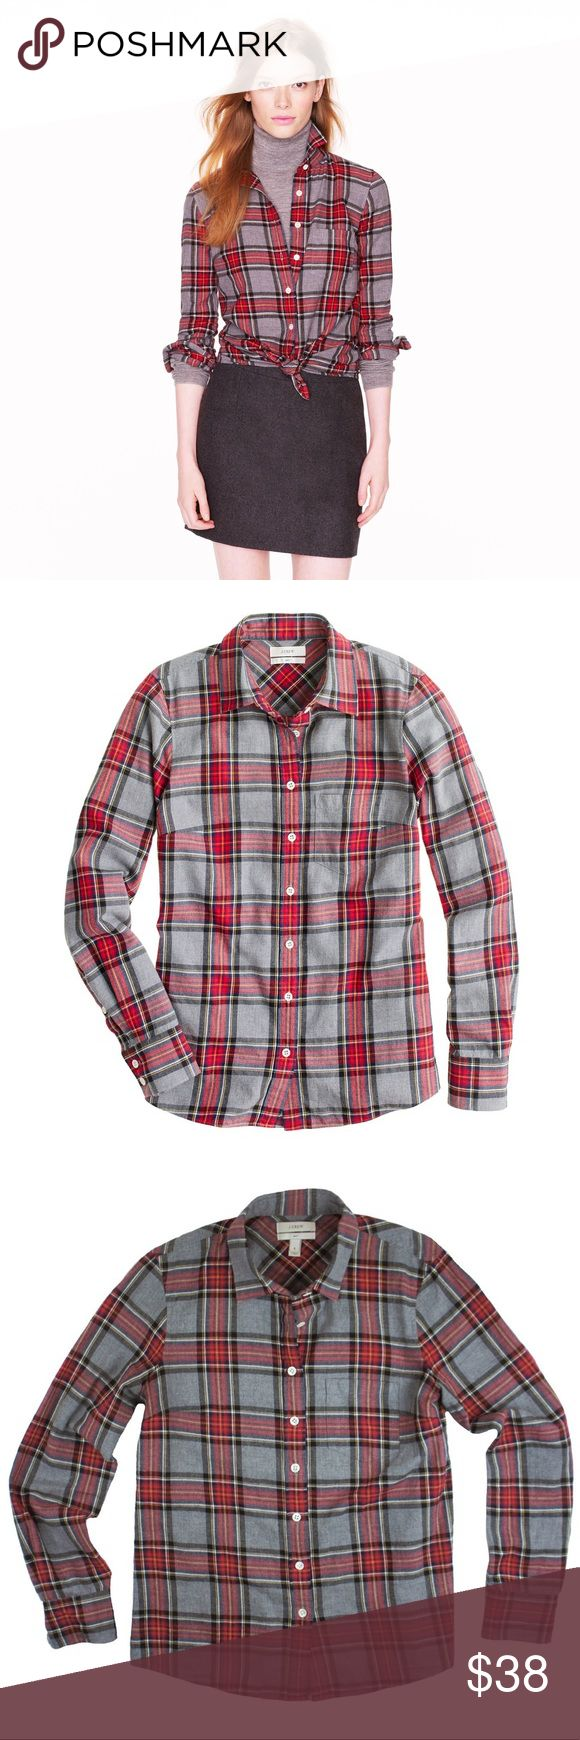 """JCREW Button Down Boy Shirt in Gray Tartan Plaid Absolutely excellent condition! This boy Shirt in gray tartan Plaid from JCREW features button closures. Made of 100% cotton. Measures: bust: 36"""", total length: 24"""", sleeves: 23"""" J. Crew Tops Button Down Shirts"""